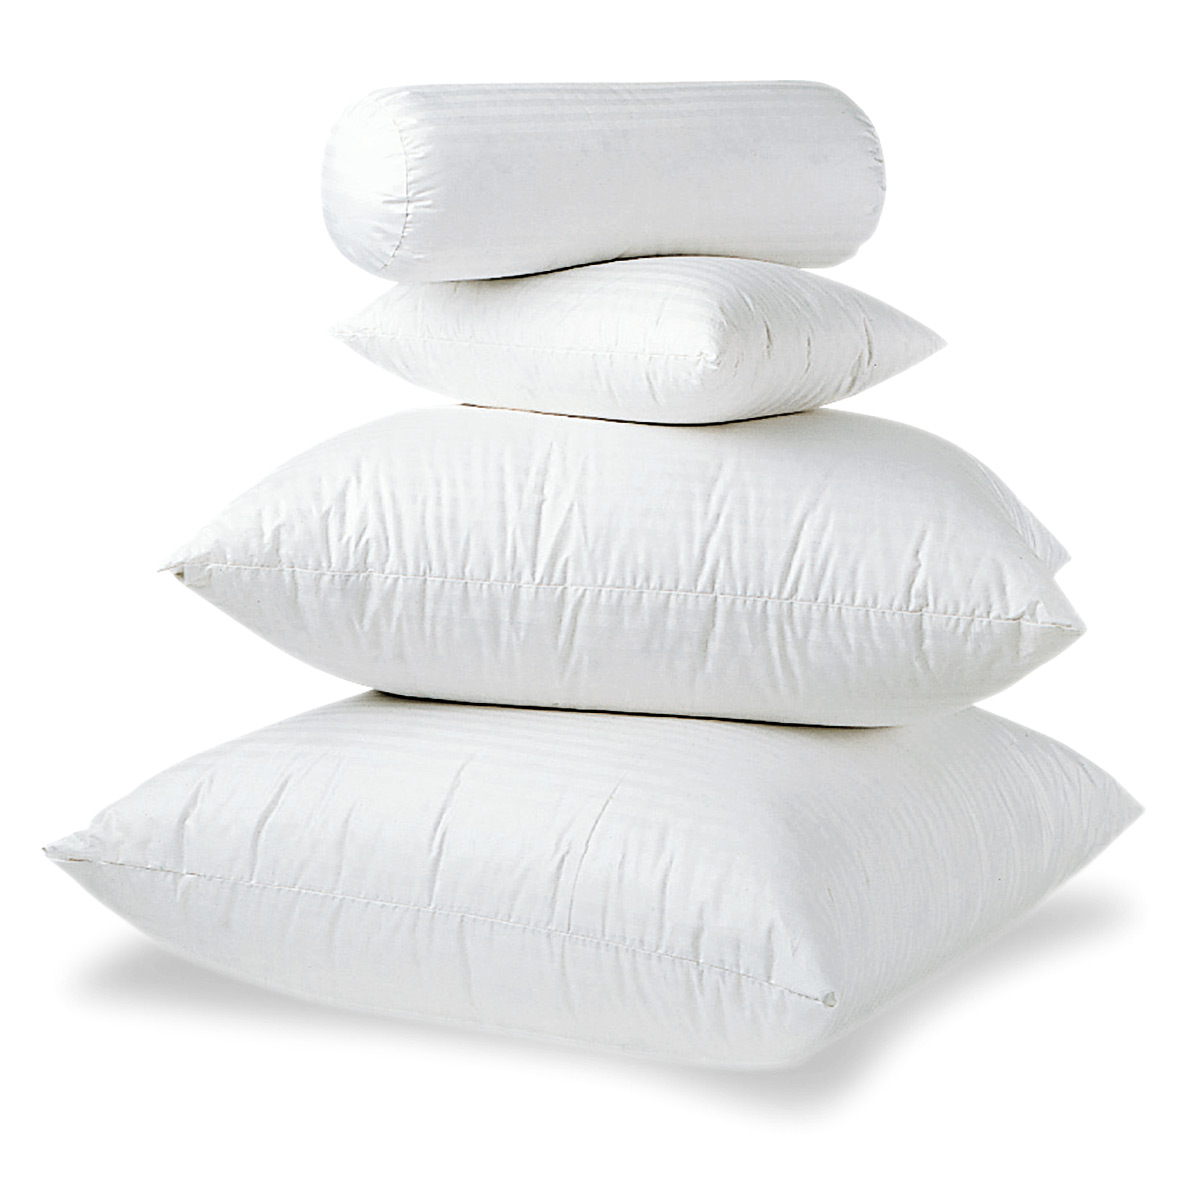 How To Wash Pillows: 17 Steps (with Pictures)